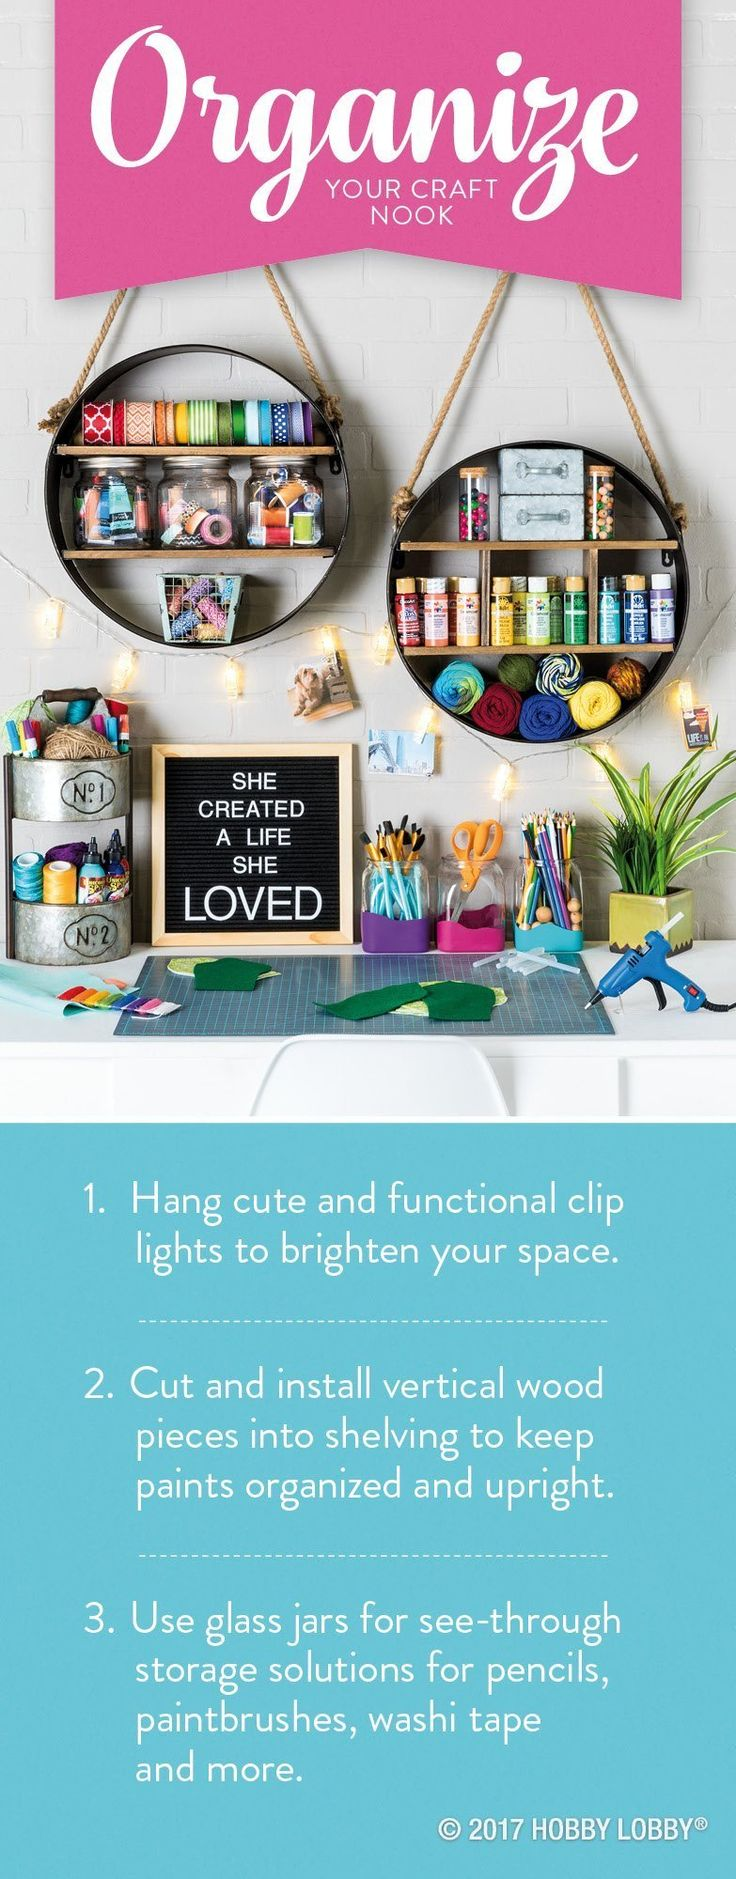 Create a life you love with a craft space that inspires!